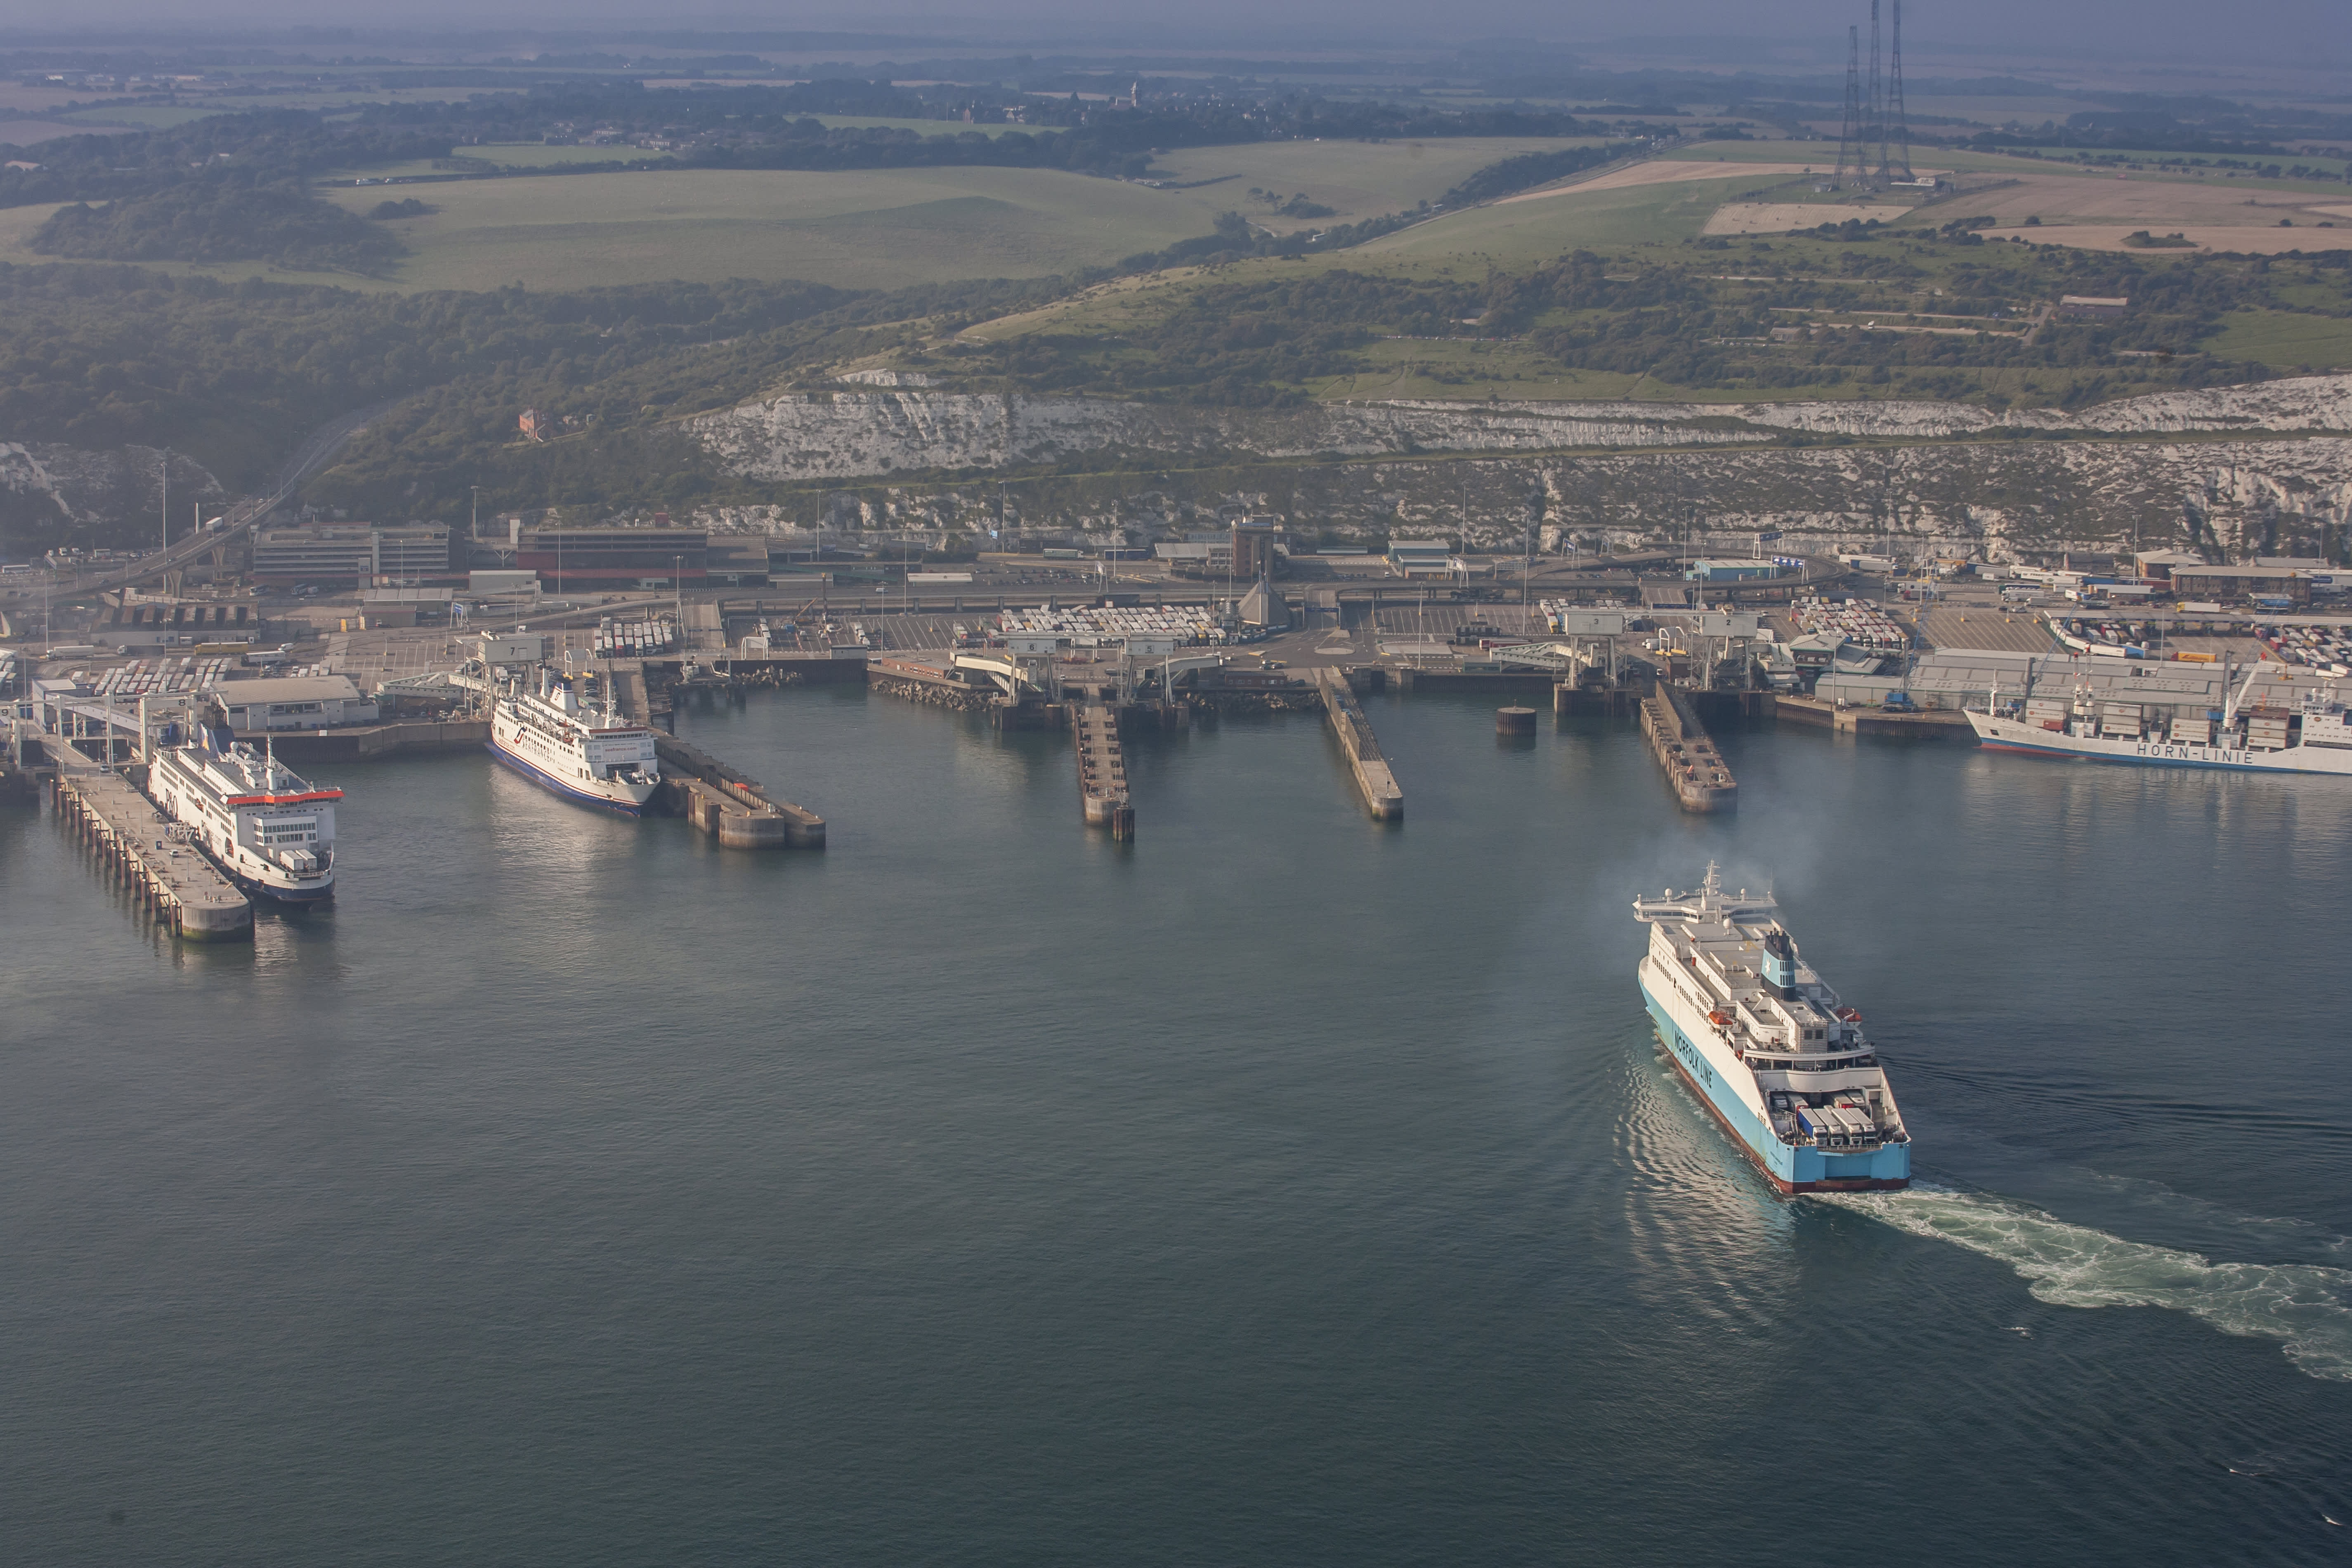 Brexit threatens to cause some major trade disruption in Dover